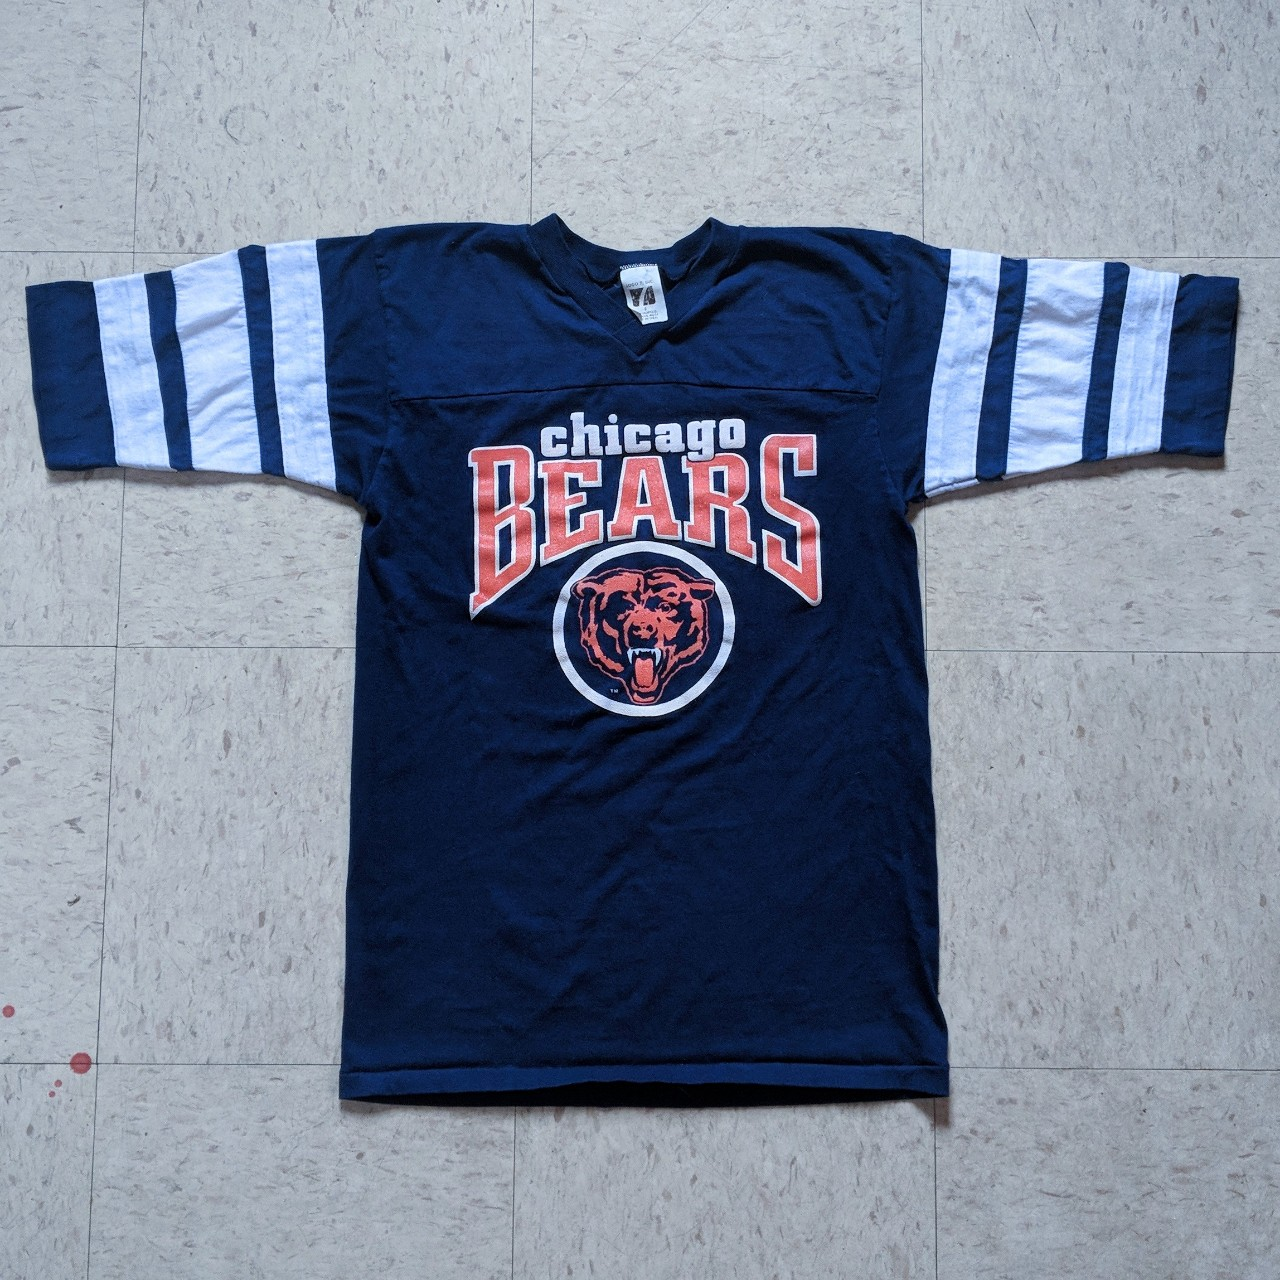 detailed look 9aec4 a3fb0 SALE! Old school Chicago Bears jersey style tee... - Depop